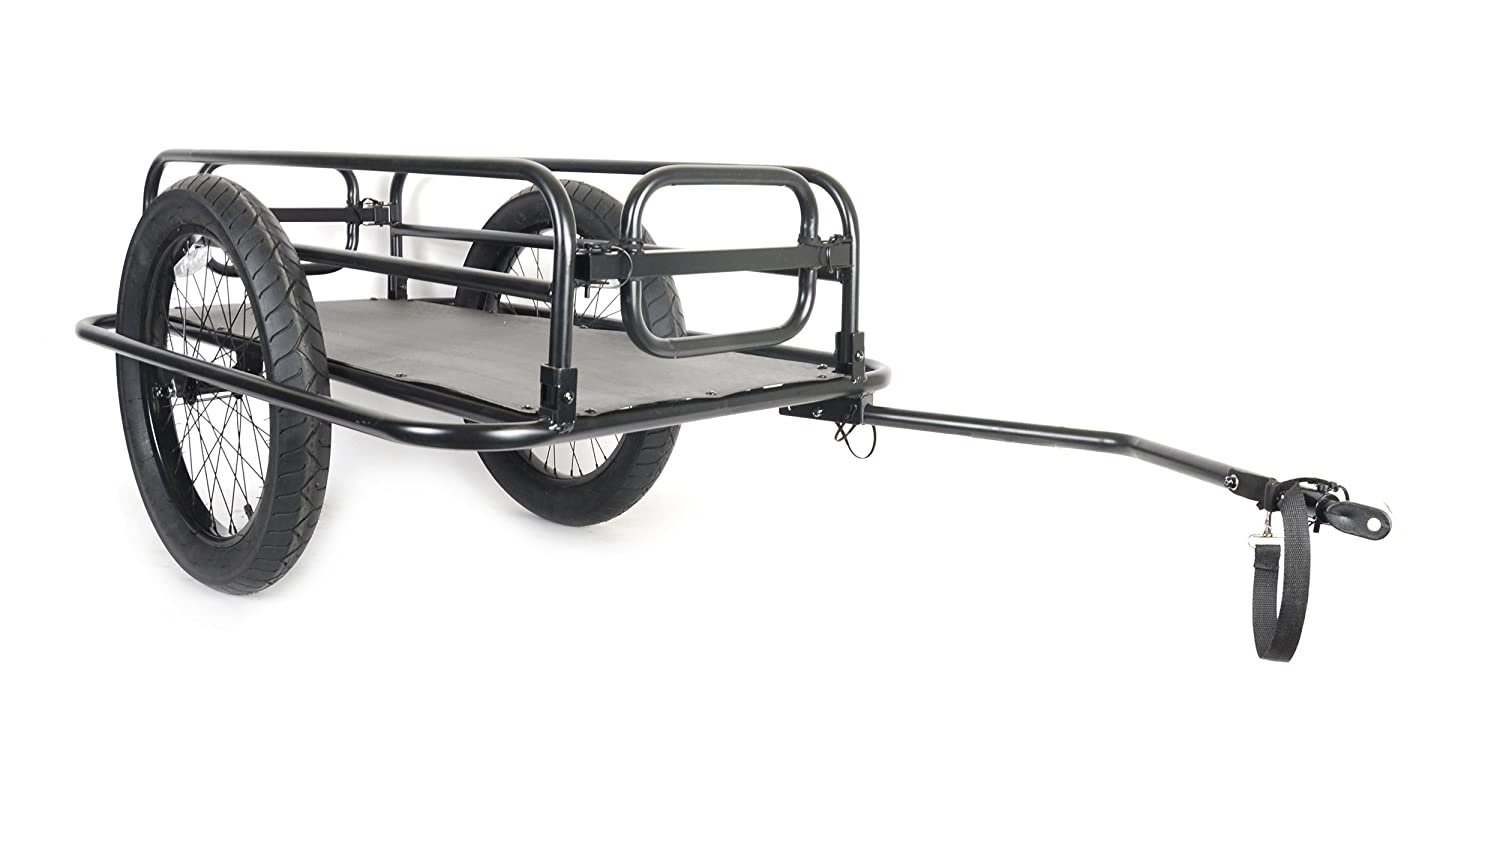 Associated product image for Cycle Force Trail-Monster Cargo Trailer, Matte Black